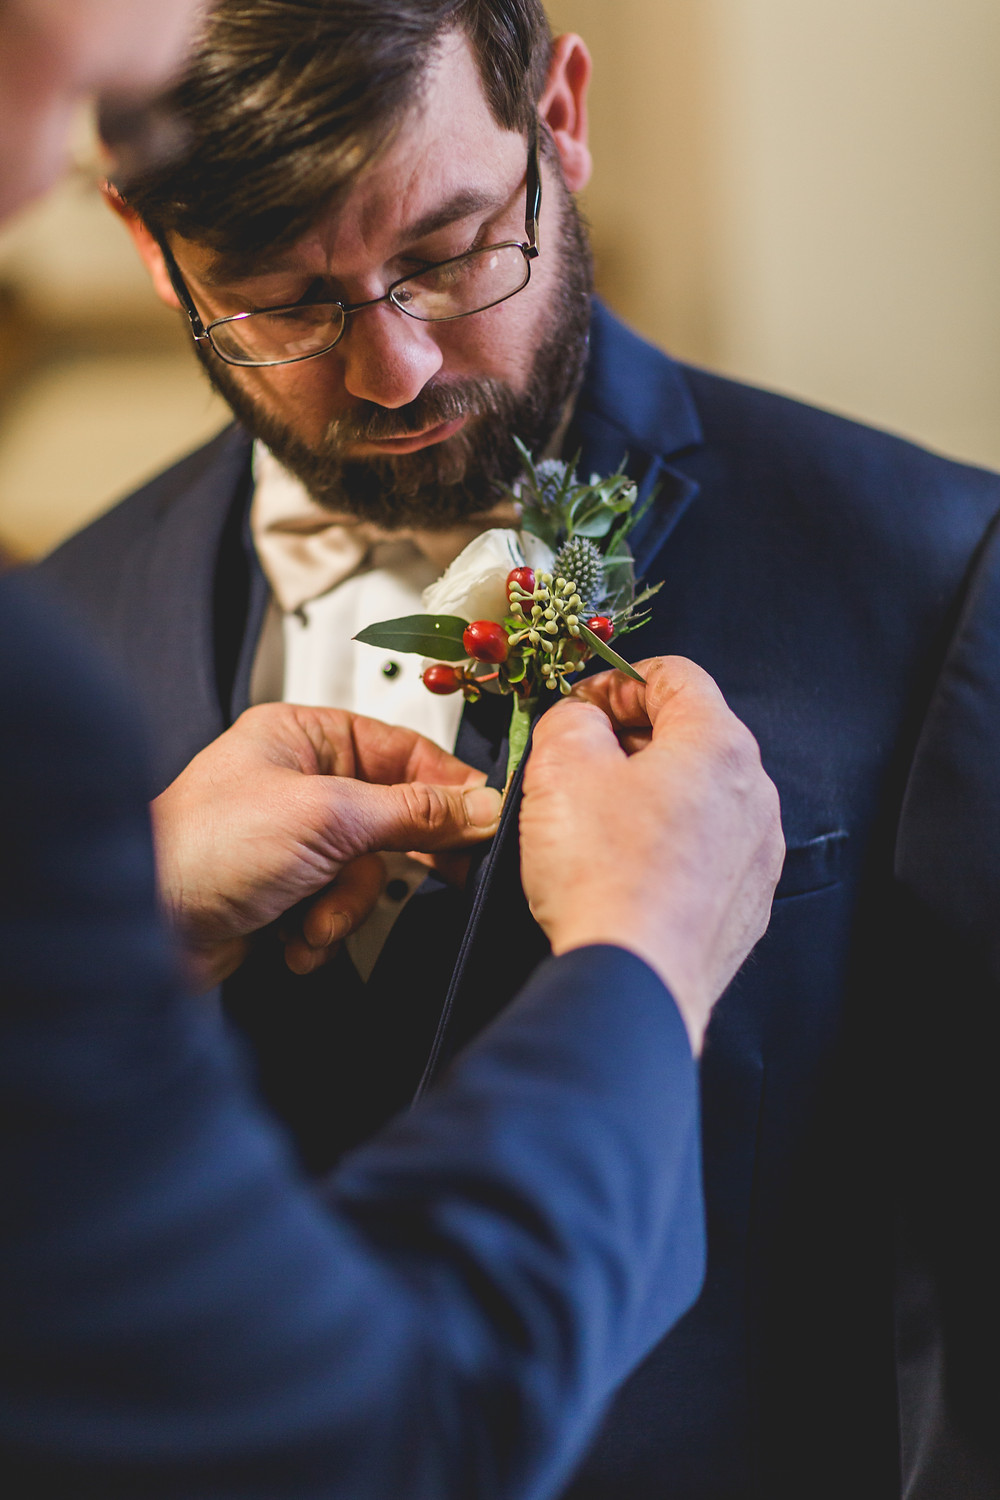 boutonniere, groom getting ready, wedding photographer located in Illinois, Chicagoland wedding photographer, professional photographer,